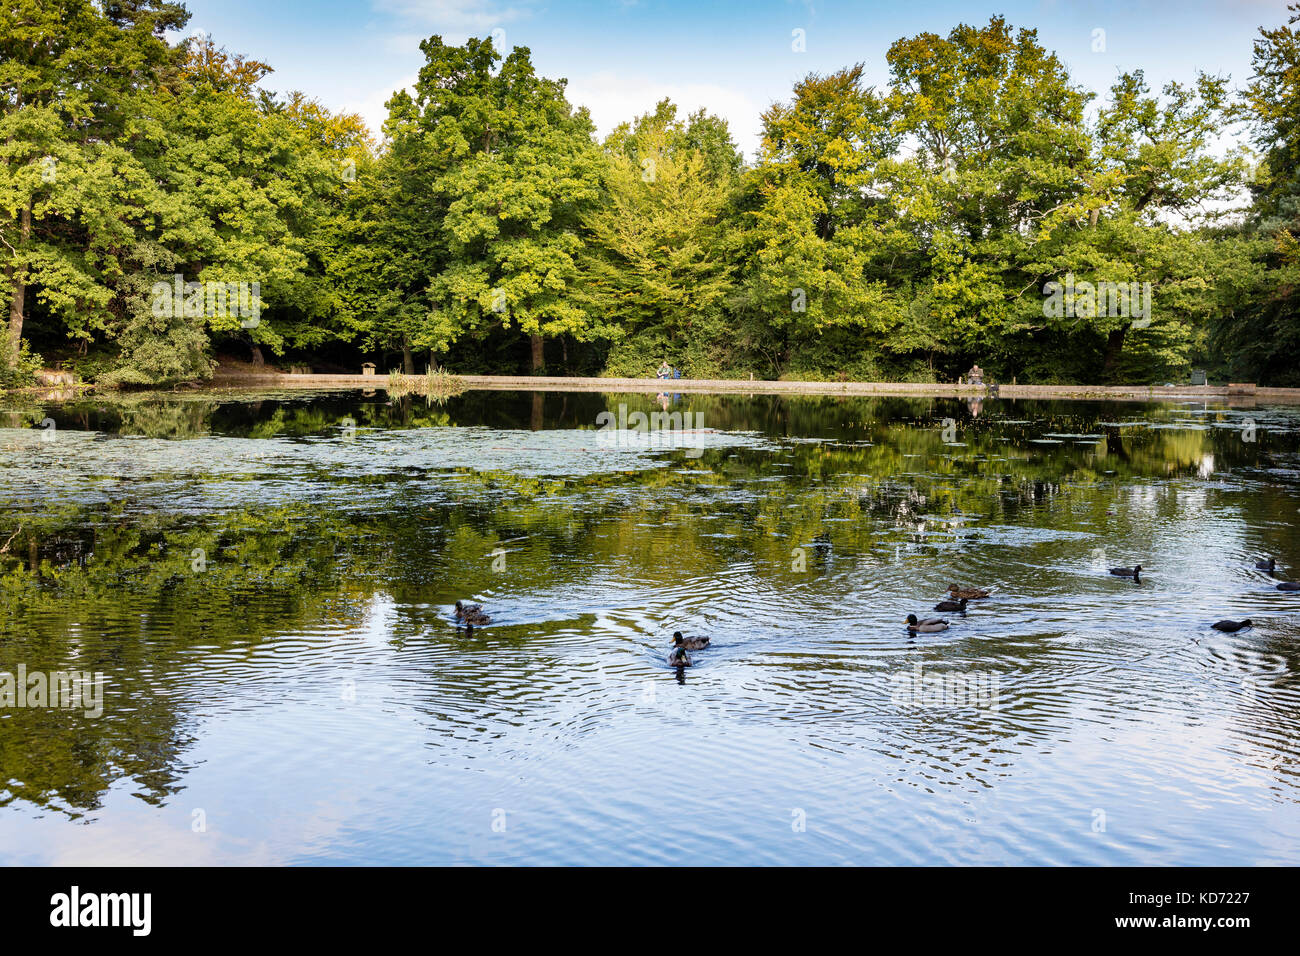 Anglers on the Lilly ponds at Keston Common a popular fishing spot, Bromley, London, UK - Stock Image